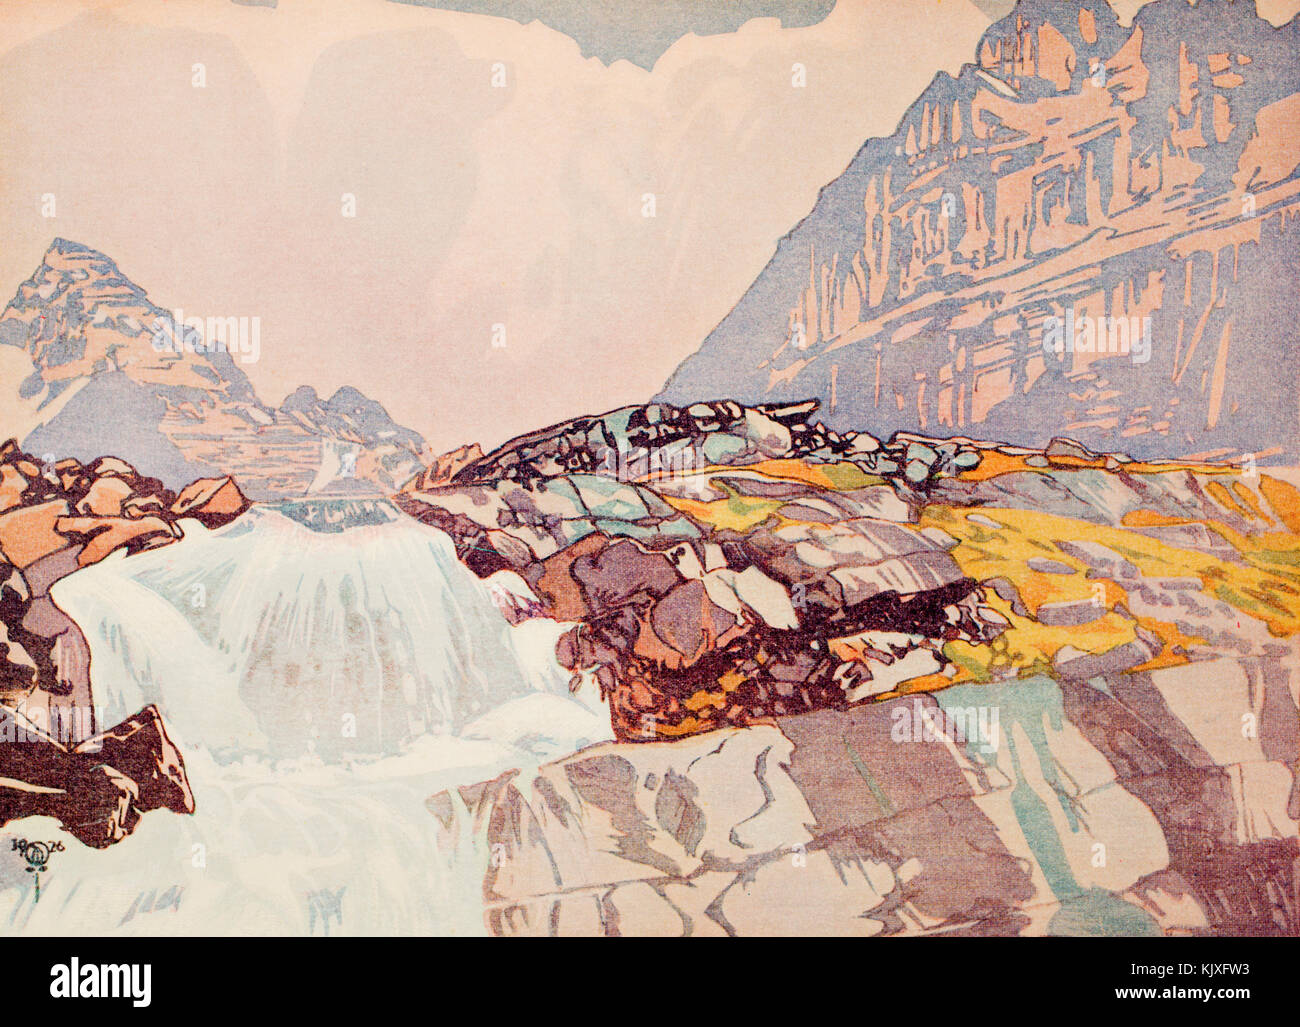 1926 halftone illustration of colour woodcut, fast flowing mountain stream - Stock Image